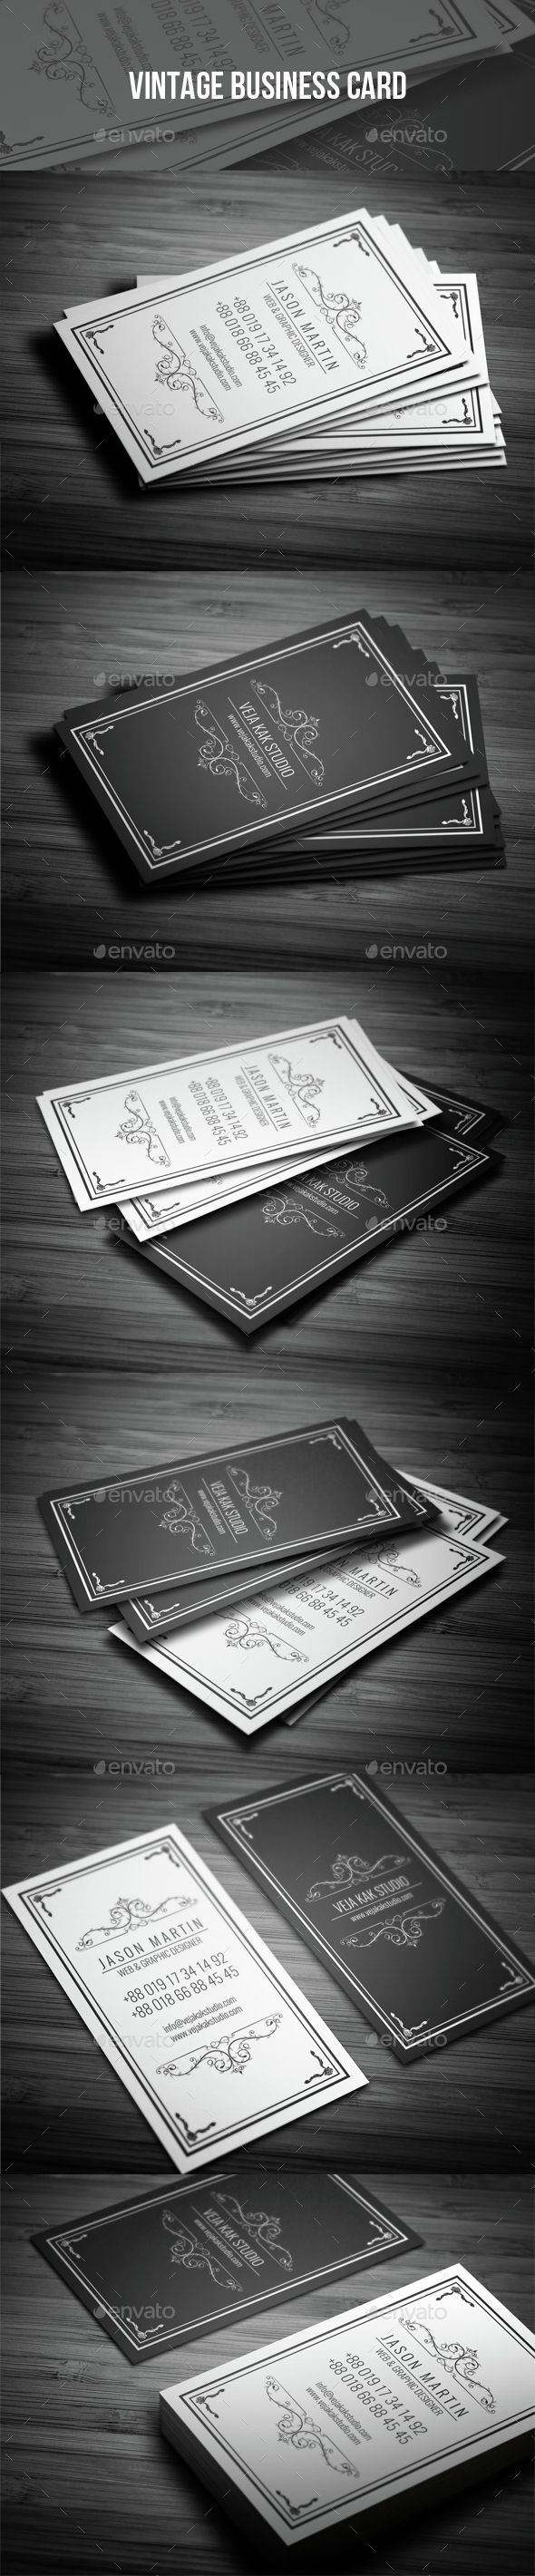 Vintage Business Card | Business cards, Business and Card templates